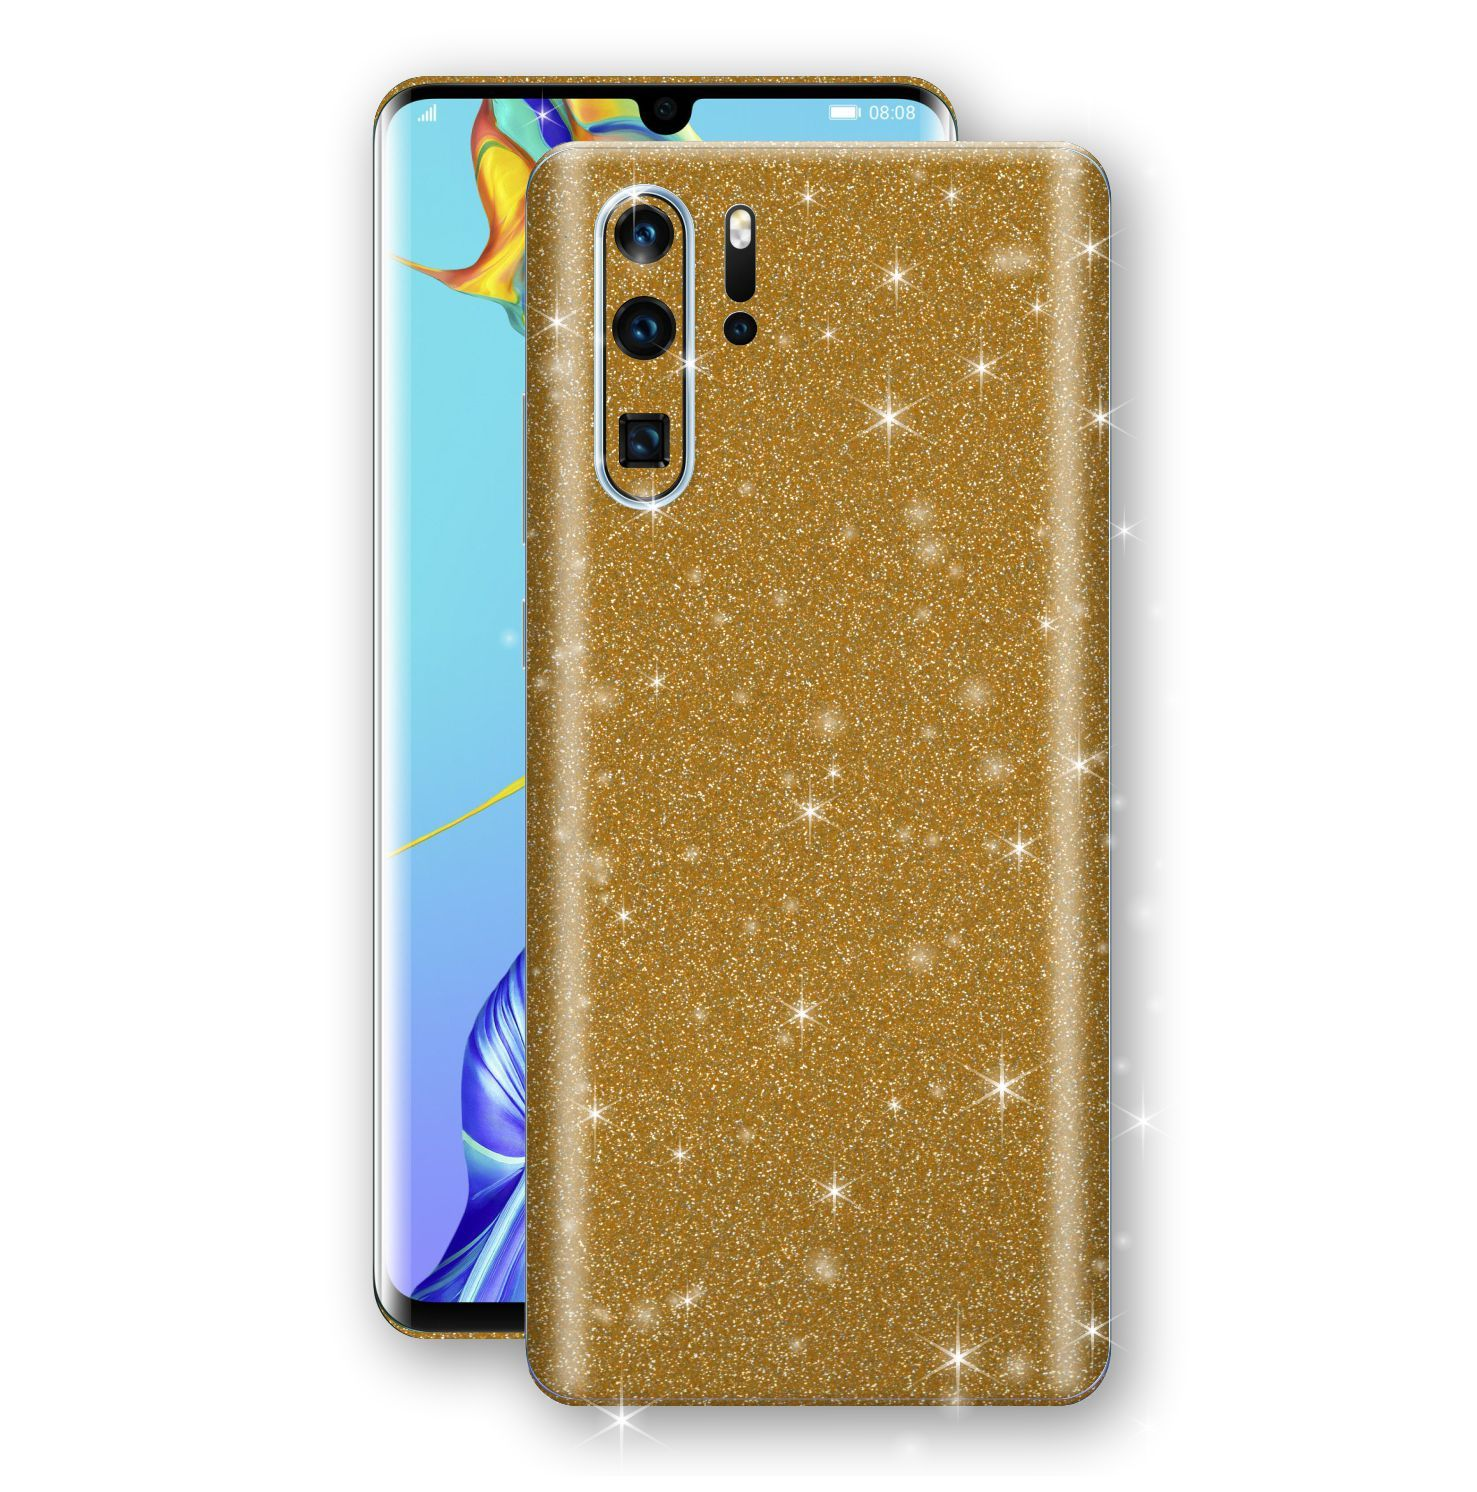 Huawei P30 PRO Diamond Gold Shimmering, Sparkling, Glitter Skin, Decal, Wrap, Protector, Cover by EasySkinz | EasySkinz.com